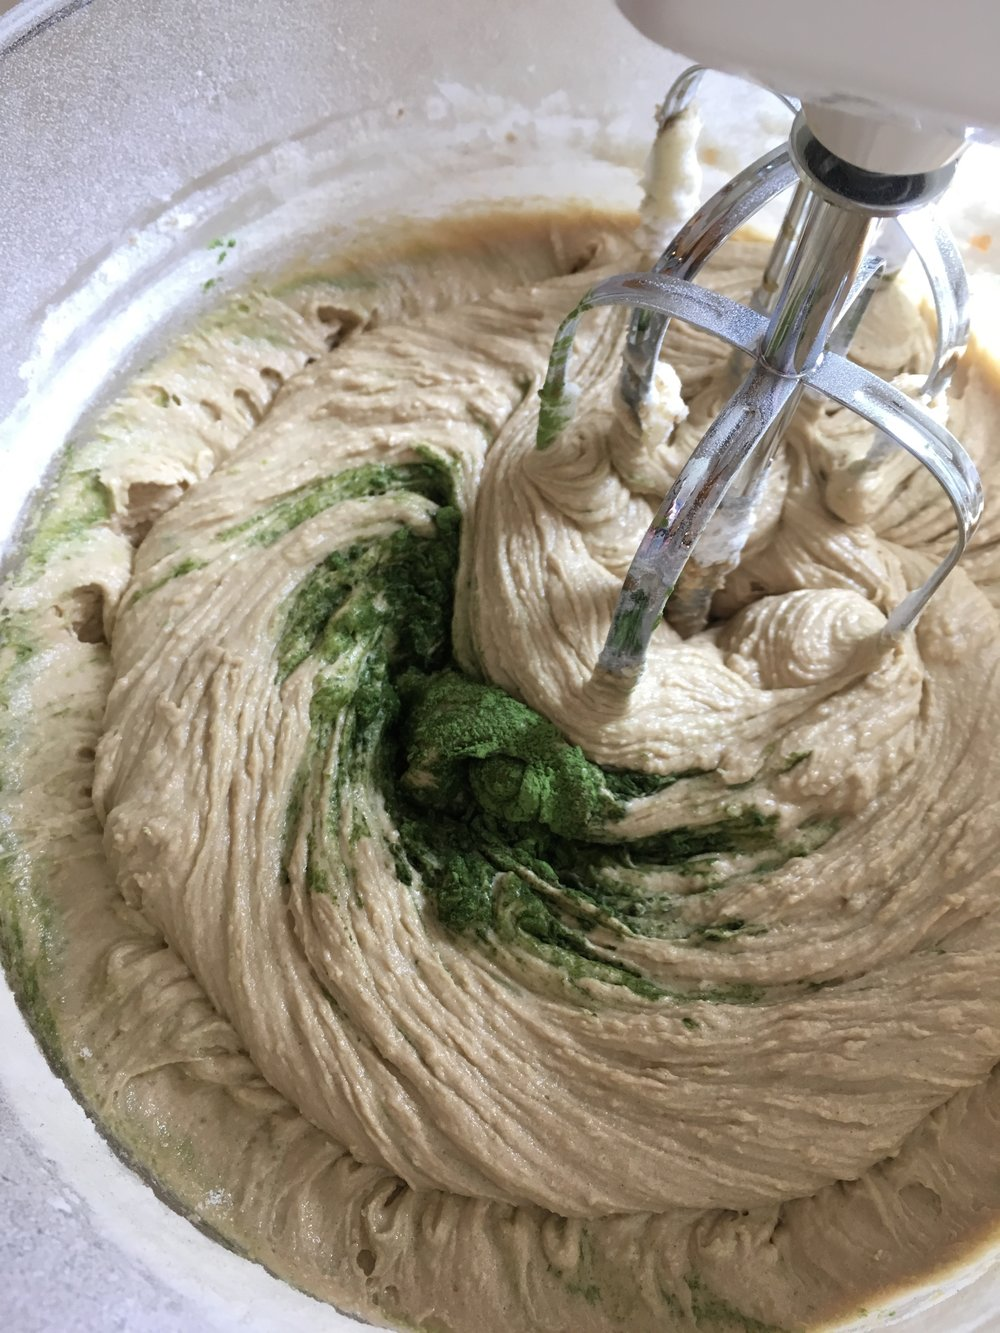 After adding the flour mixture, add your matcha and watch it turn green!